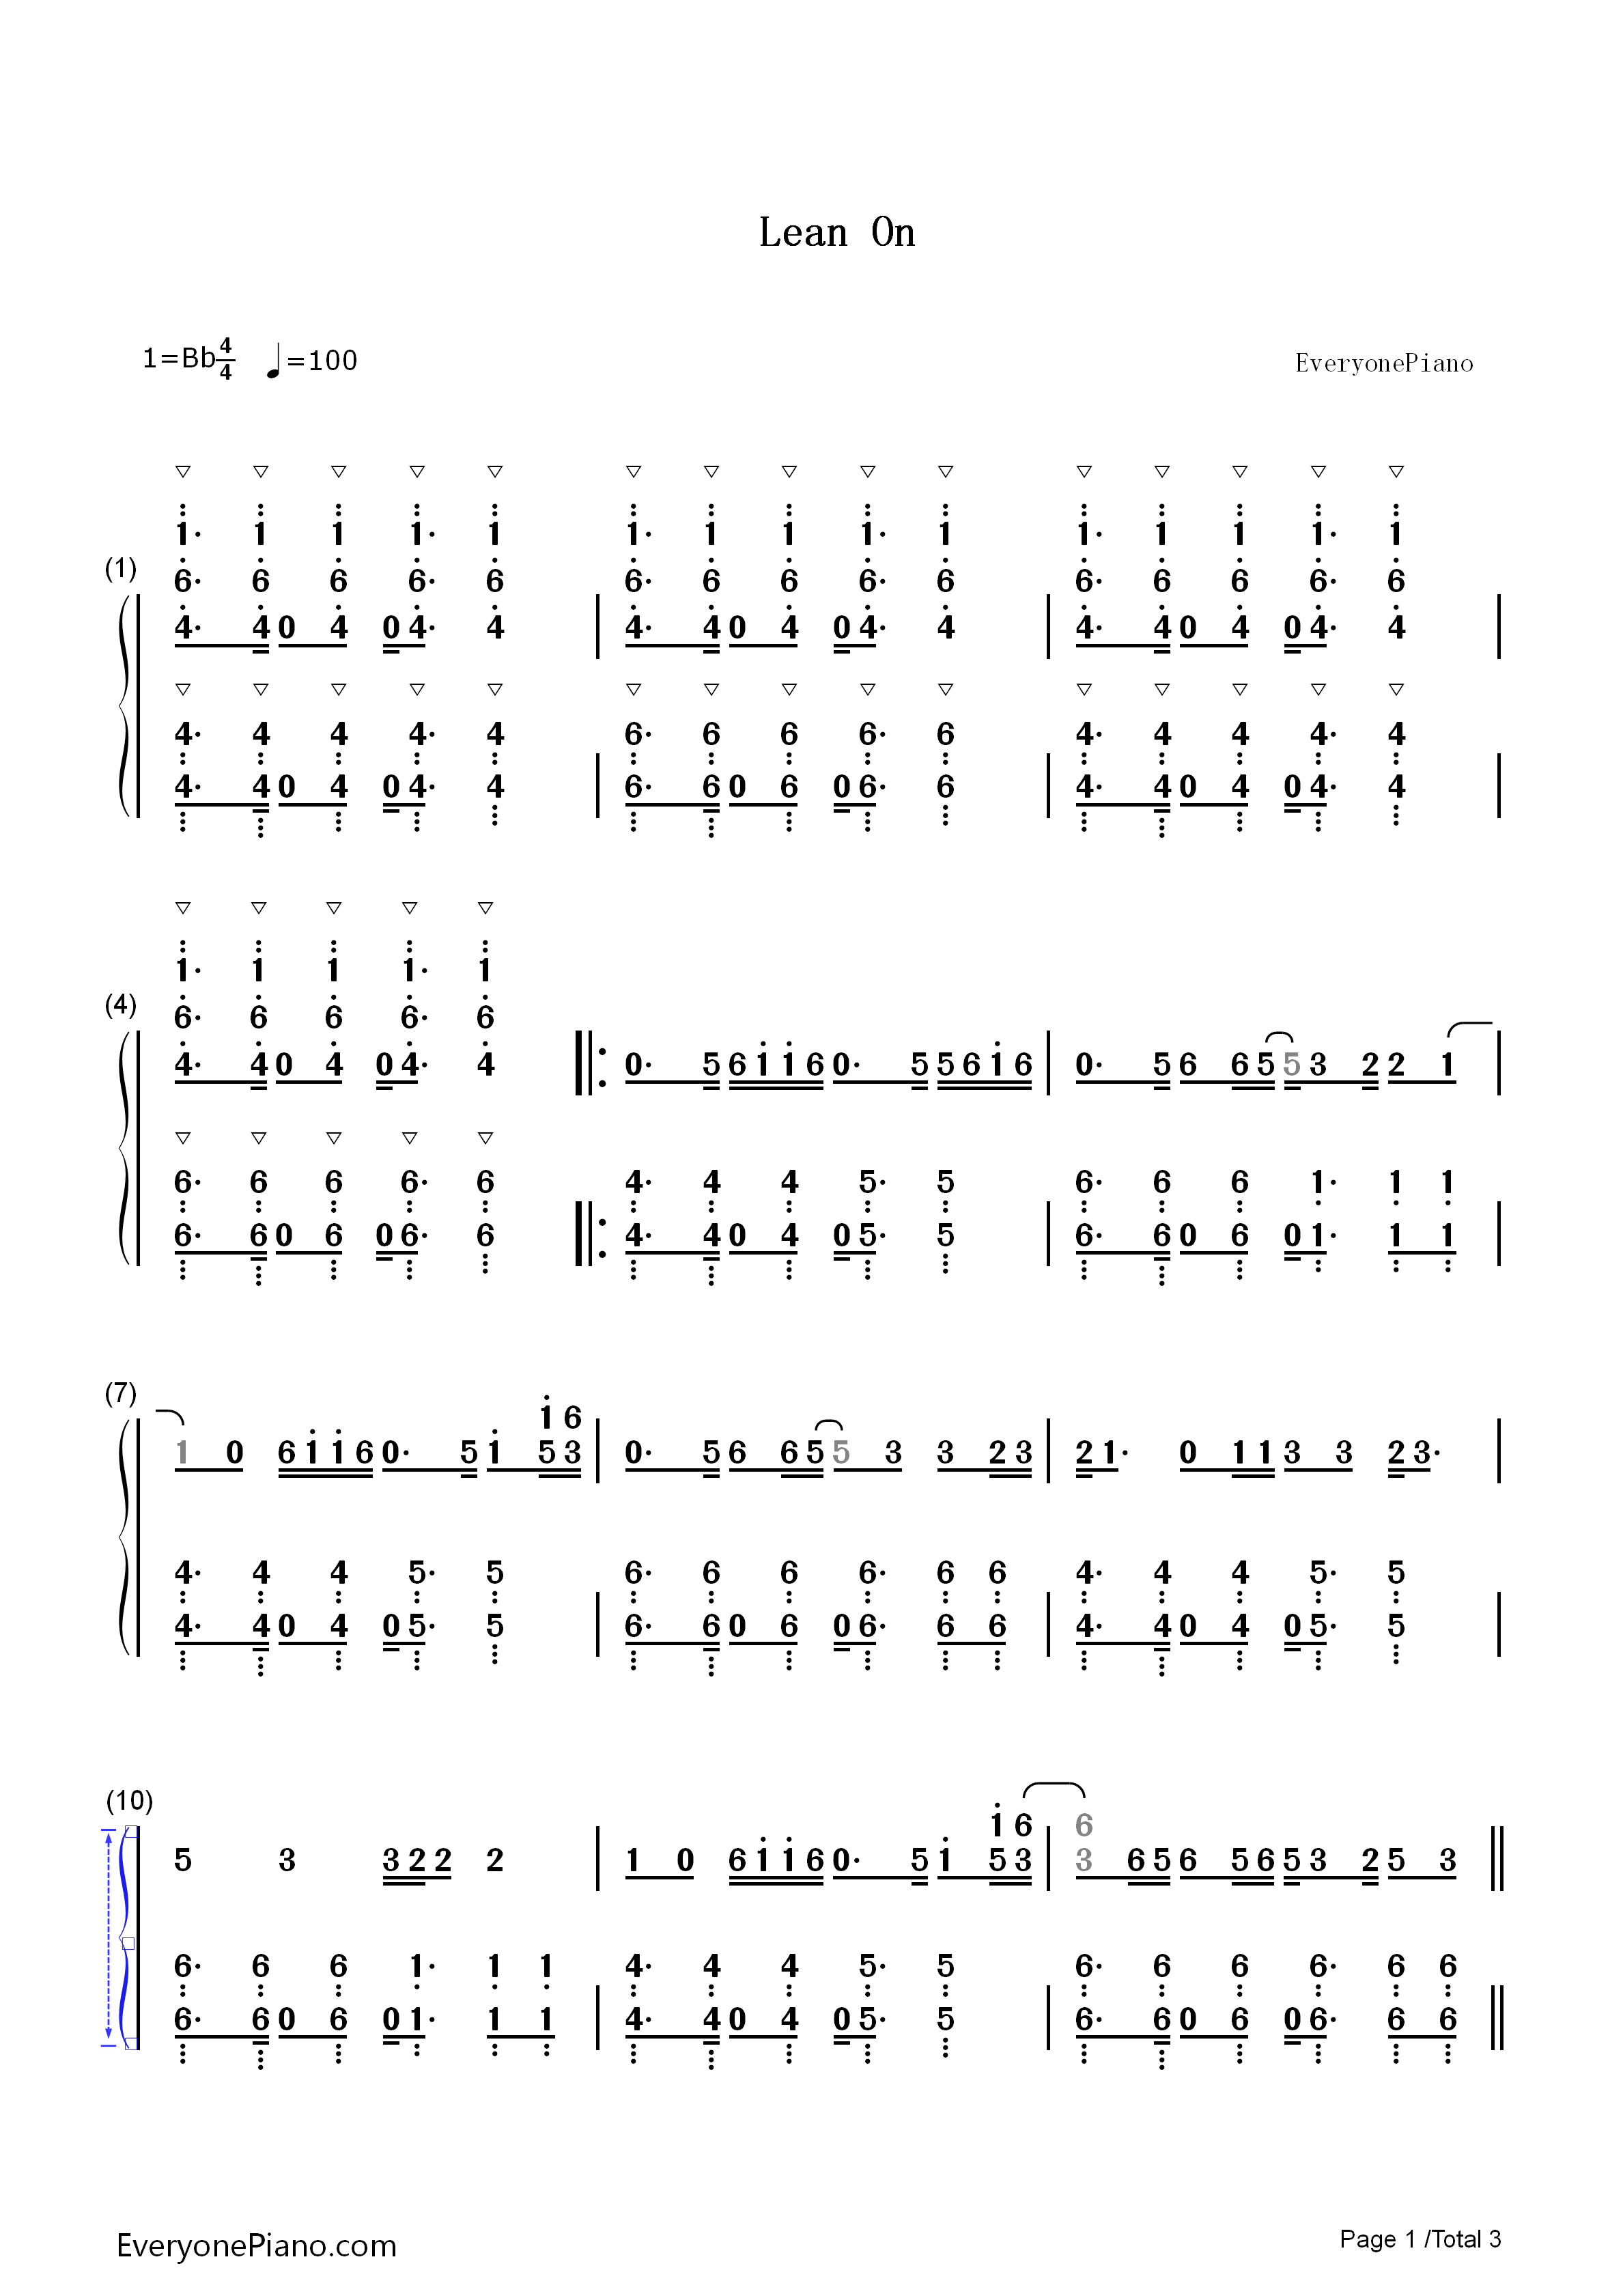 Lean On-Major Lazer Numbered Musical Notation Preview 1-Free Piano Sheet Music u0026 Piano Chords